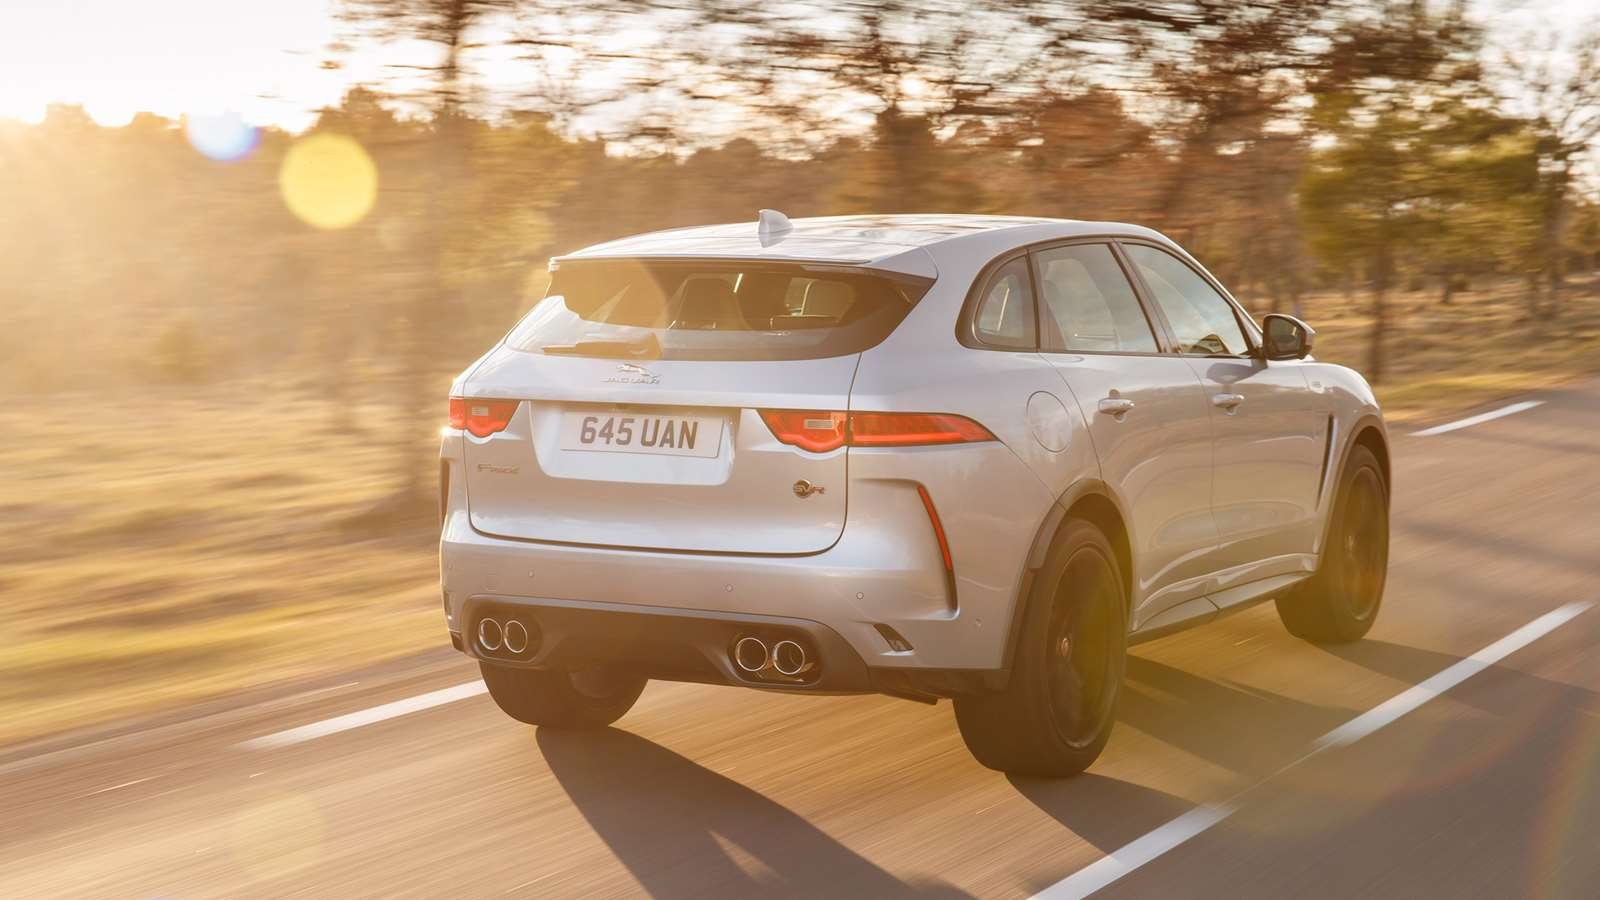 07048627 ... and now Jaguar's F-Pace SVR. Purists might not like the uneasy blend of  high performance and a high ride, but the market says otherwise.